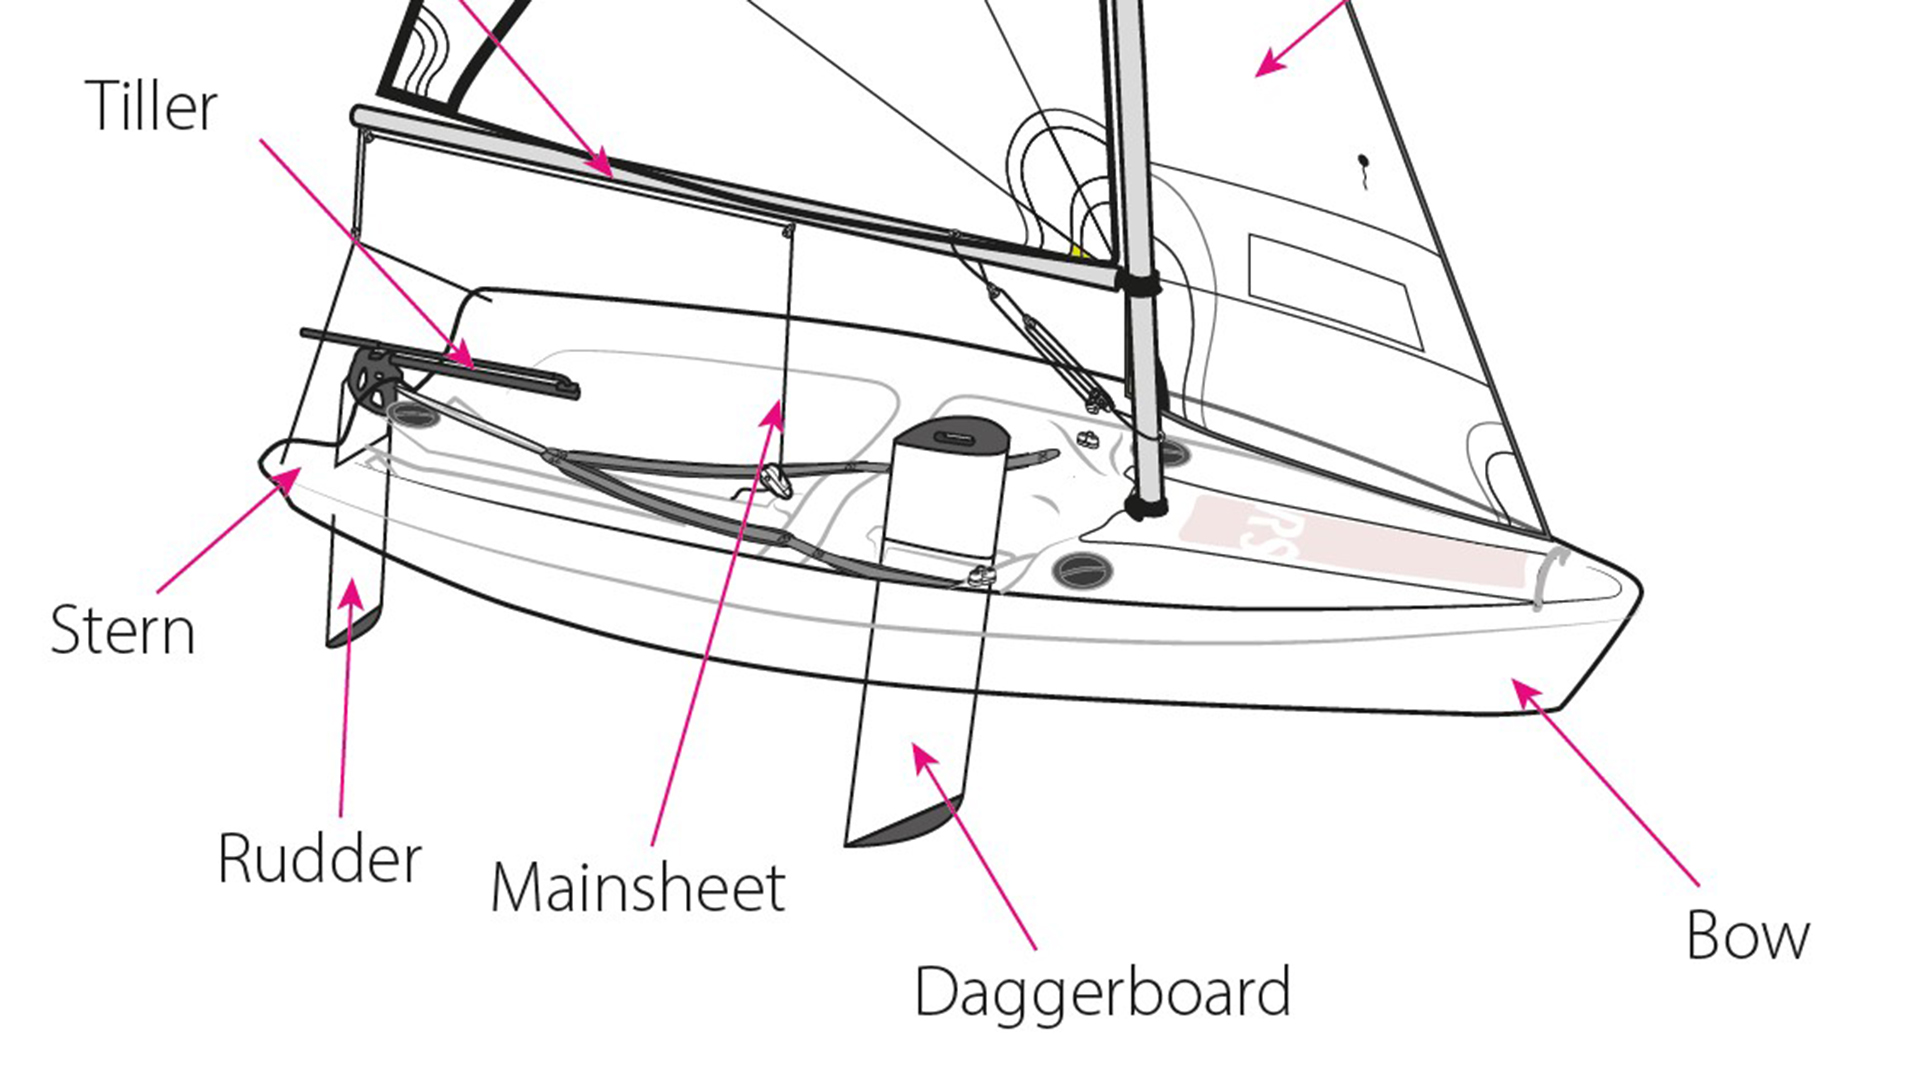 Name the boat part